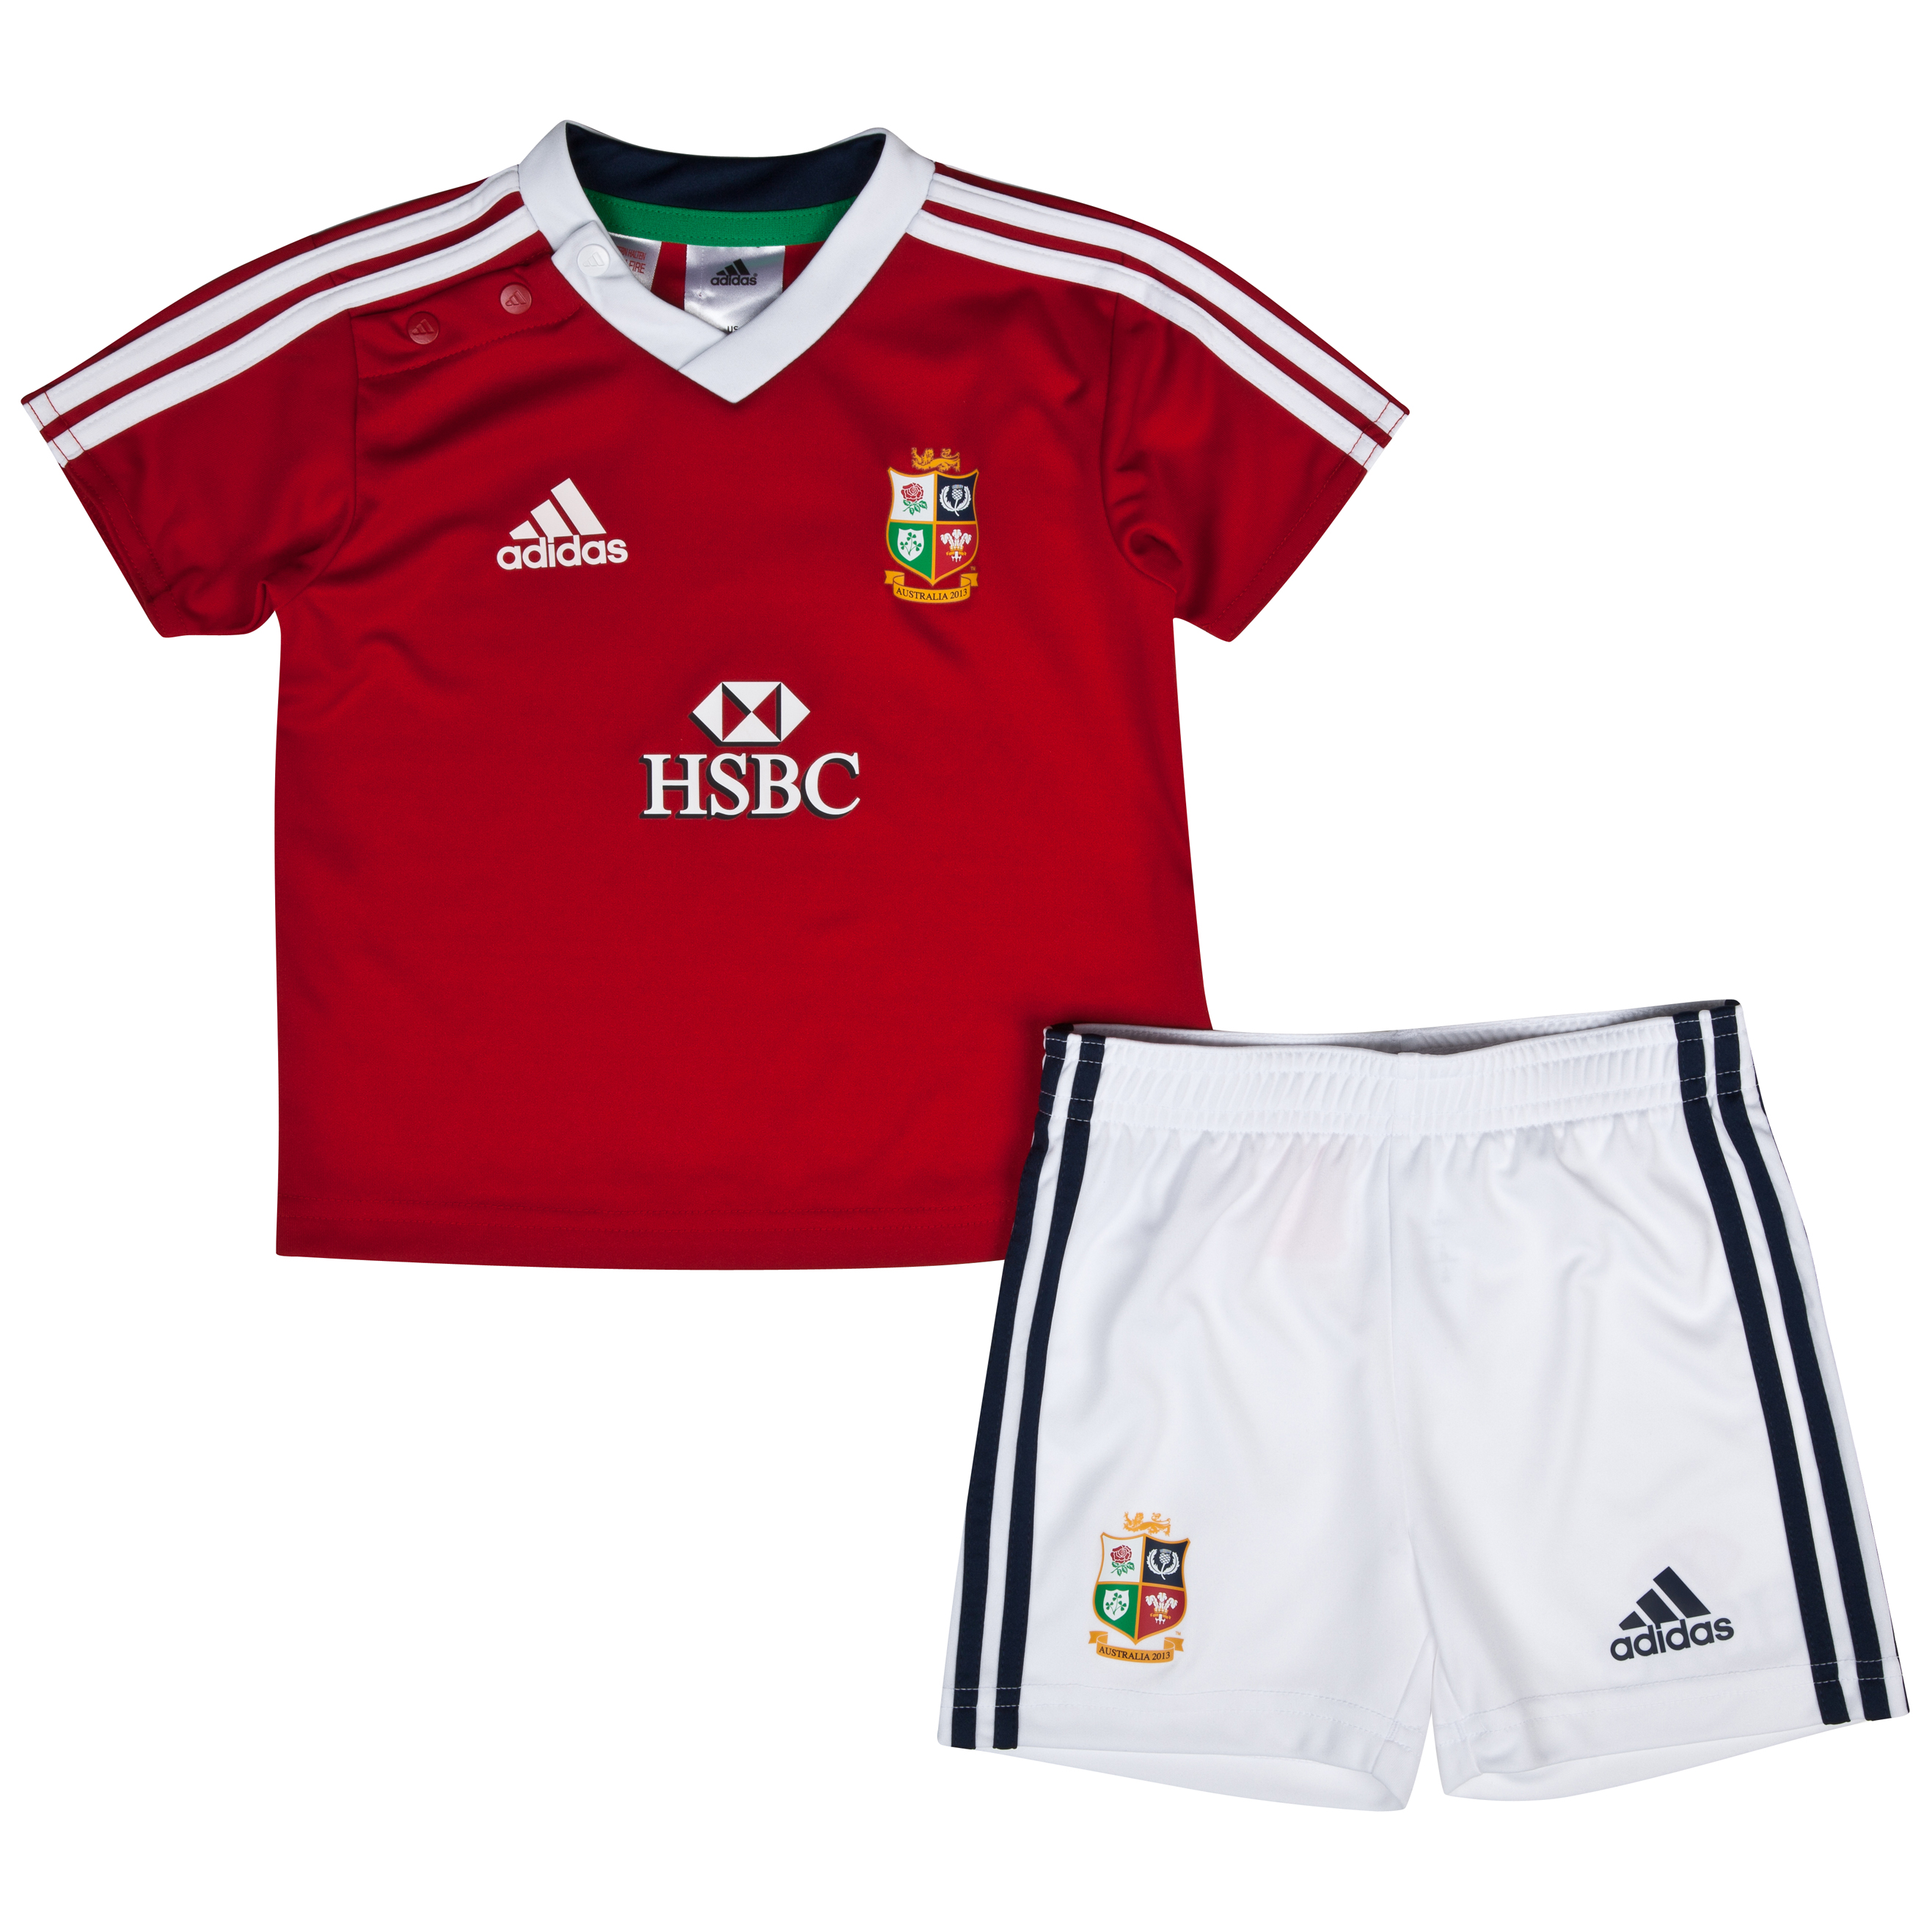 adidas British and Irish Lions Baby Kit 2013